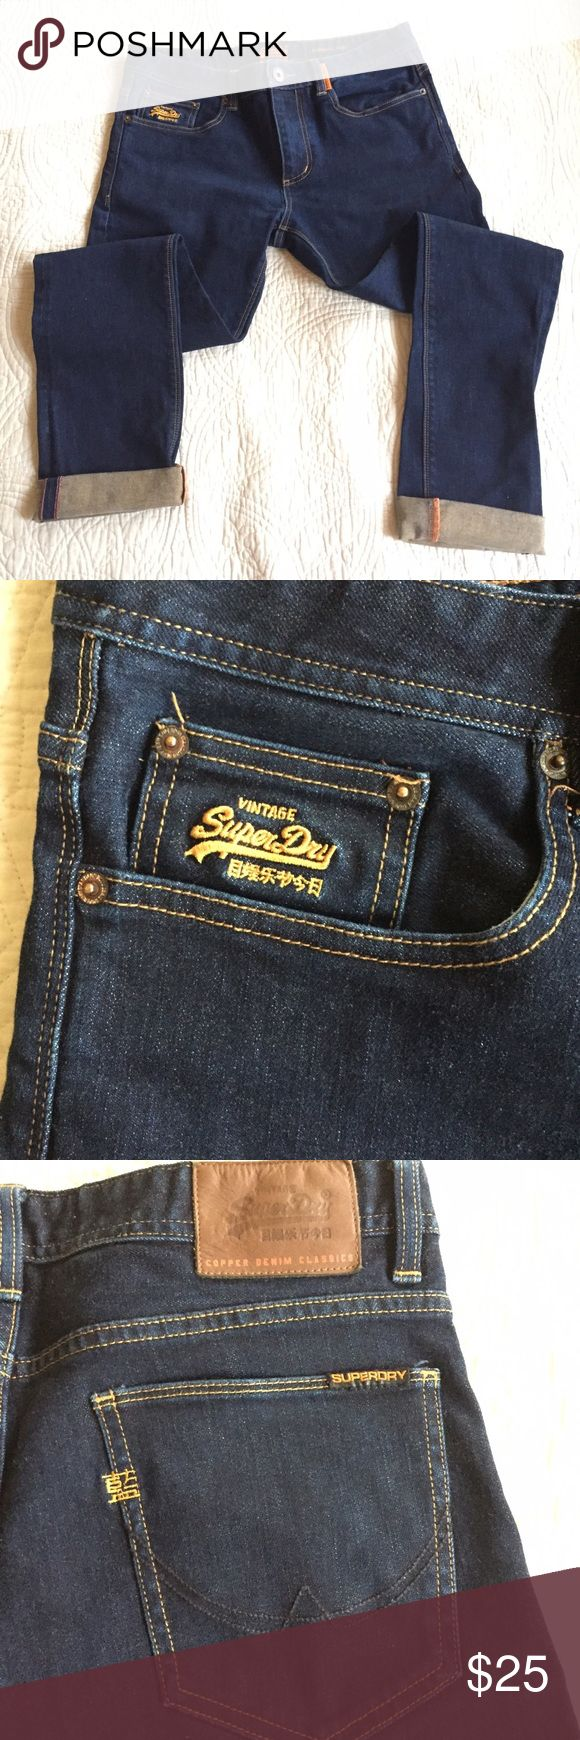 Superdry Corporal Slim Jeans Slim fit jeans. Worn and washed once....in mint condition. Superdry Jeans Slim